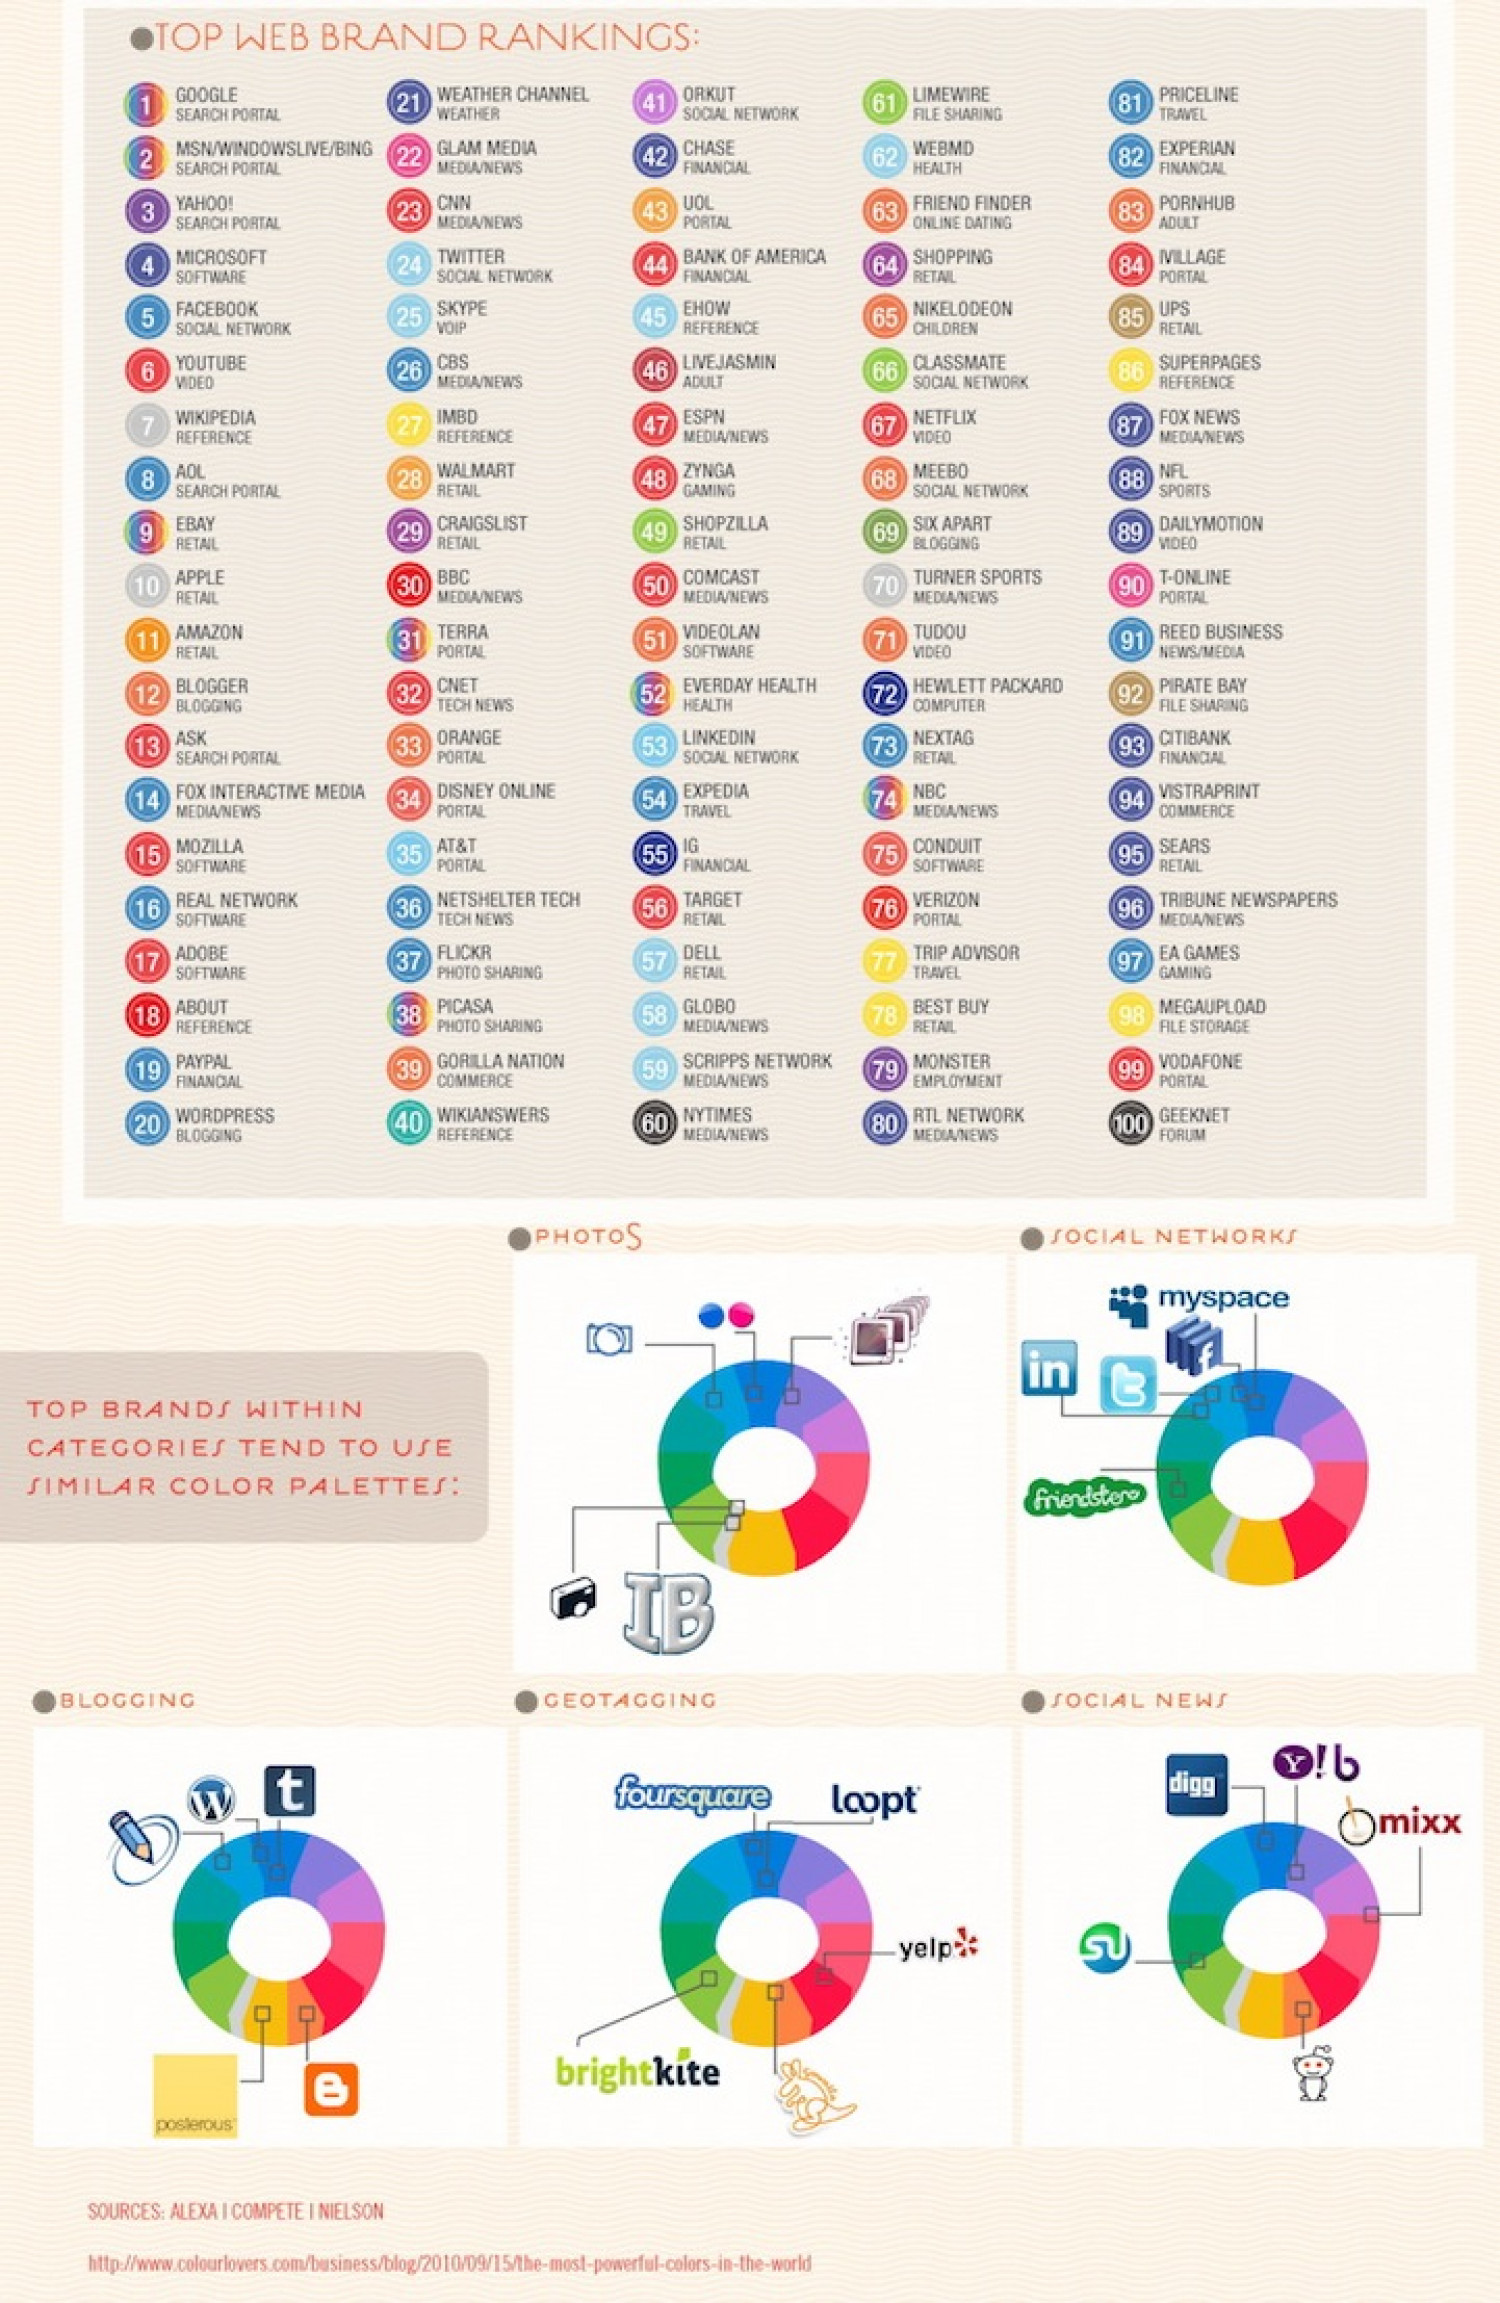 Top Web Brand Rankings Infographic